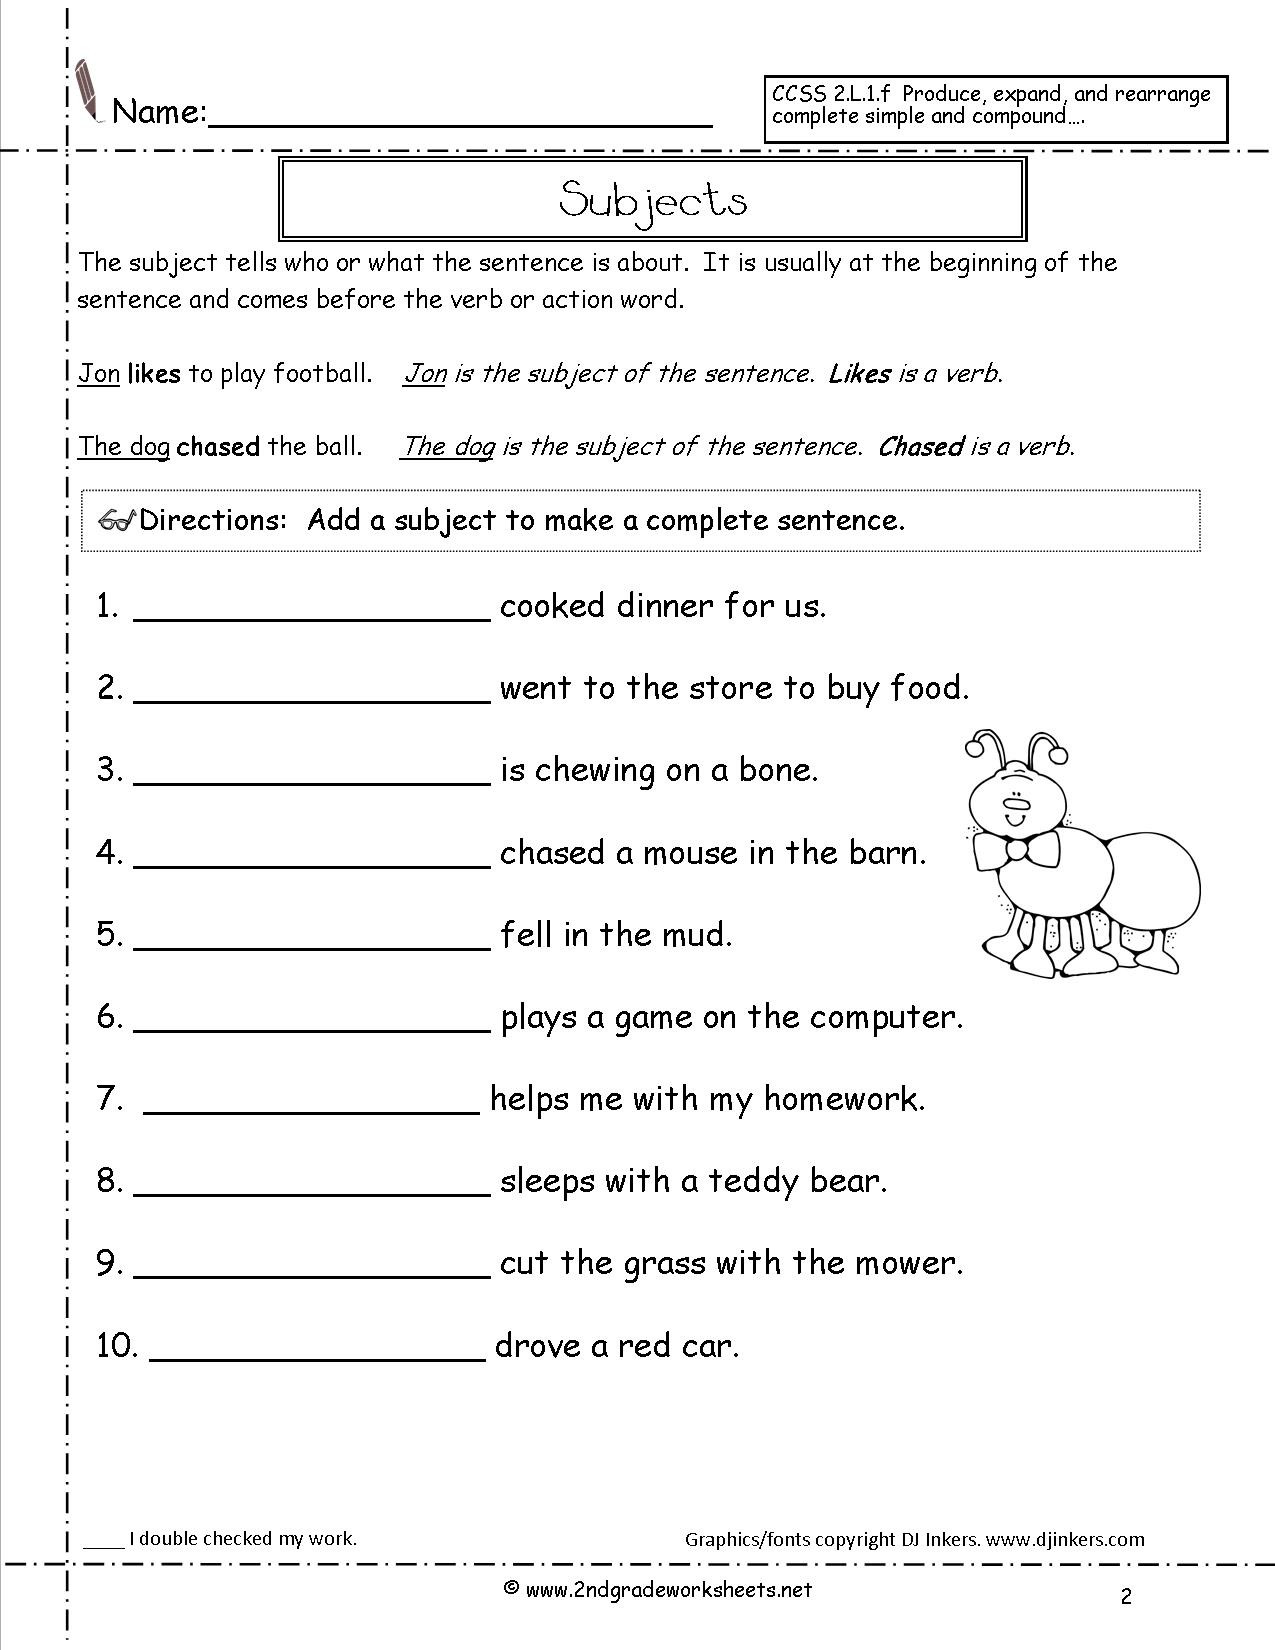 Complete Sentences Worksheets 4th Grade Basic Math Words Printable Cursive Worksheets 3rd Grade